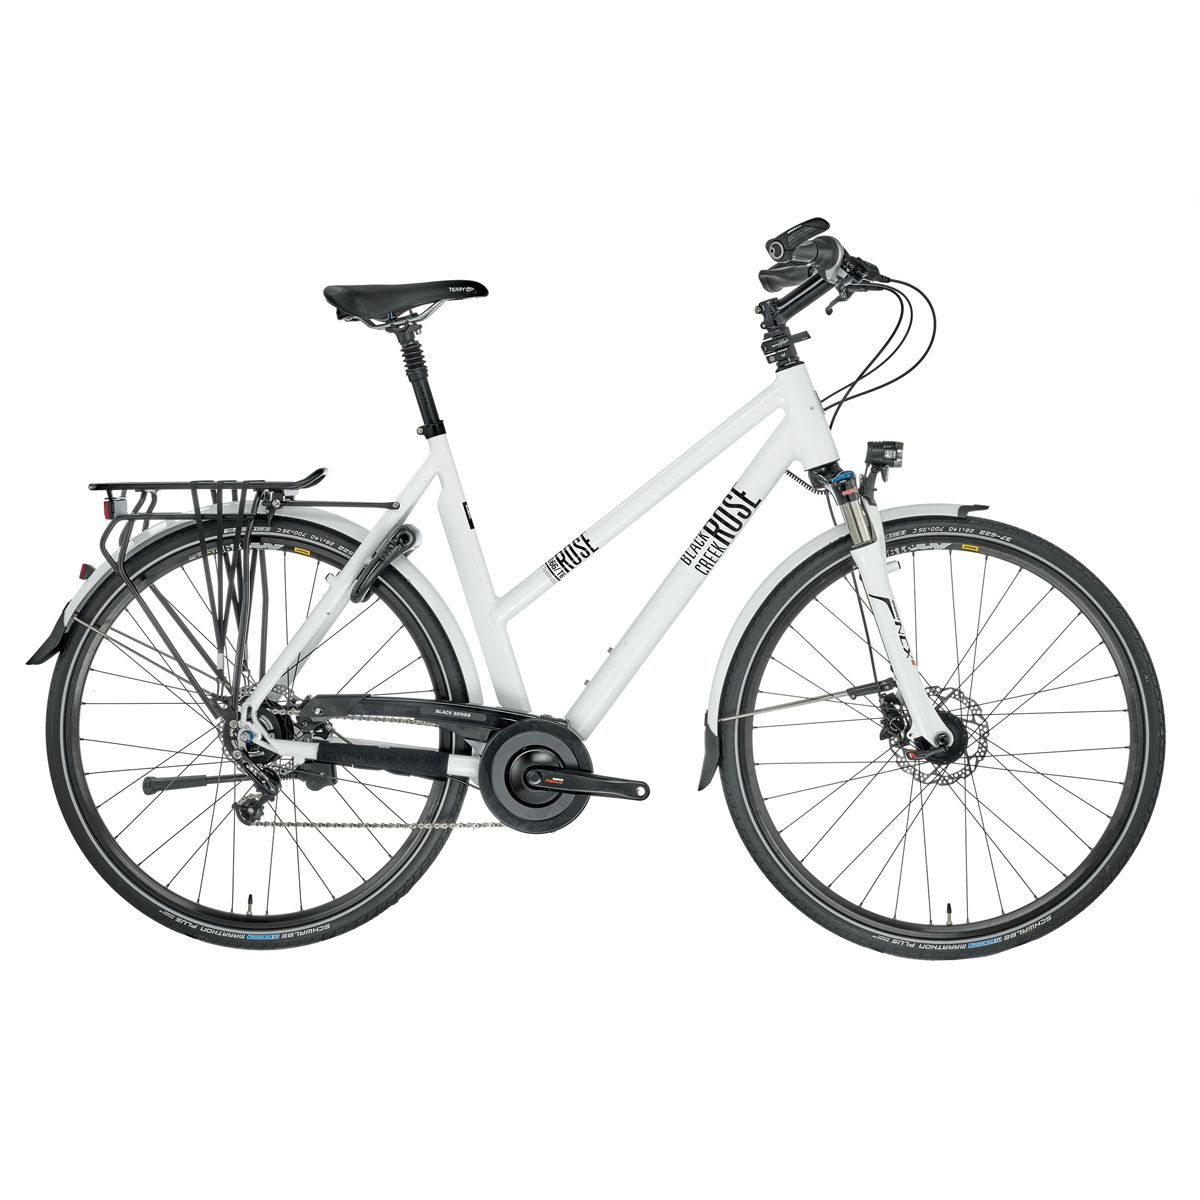 Black Creek 2 Unisex showroom bike